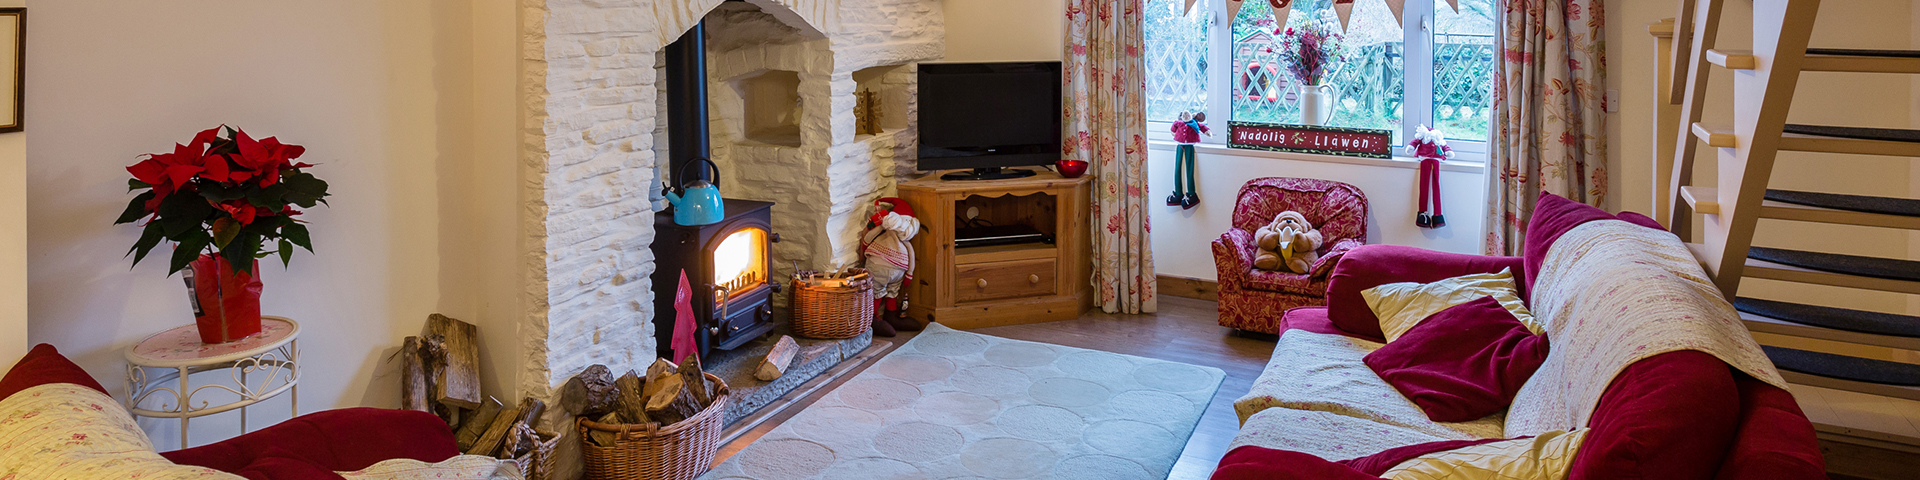 relaxing breaks uk, luxury holiday cottages, best uk holidays for families, countryside breaks for couples